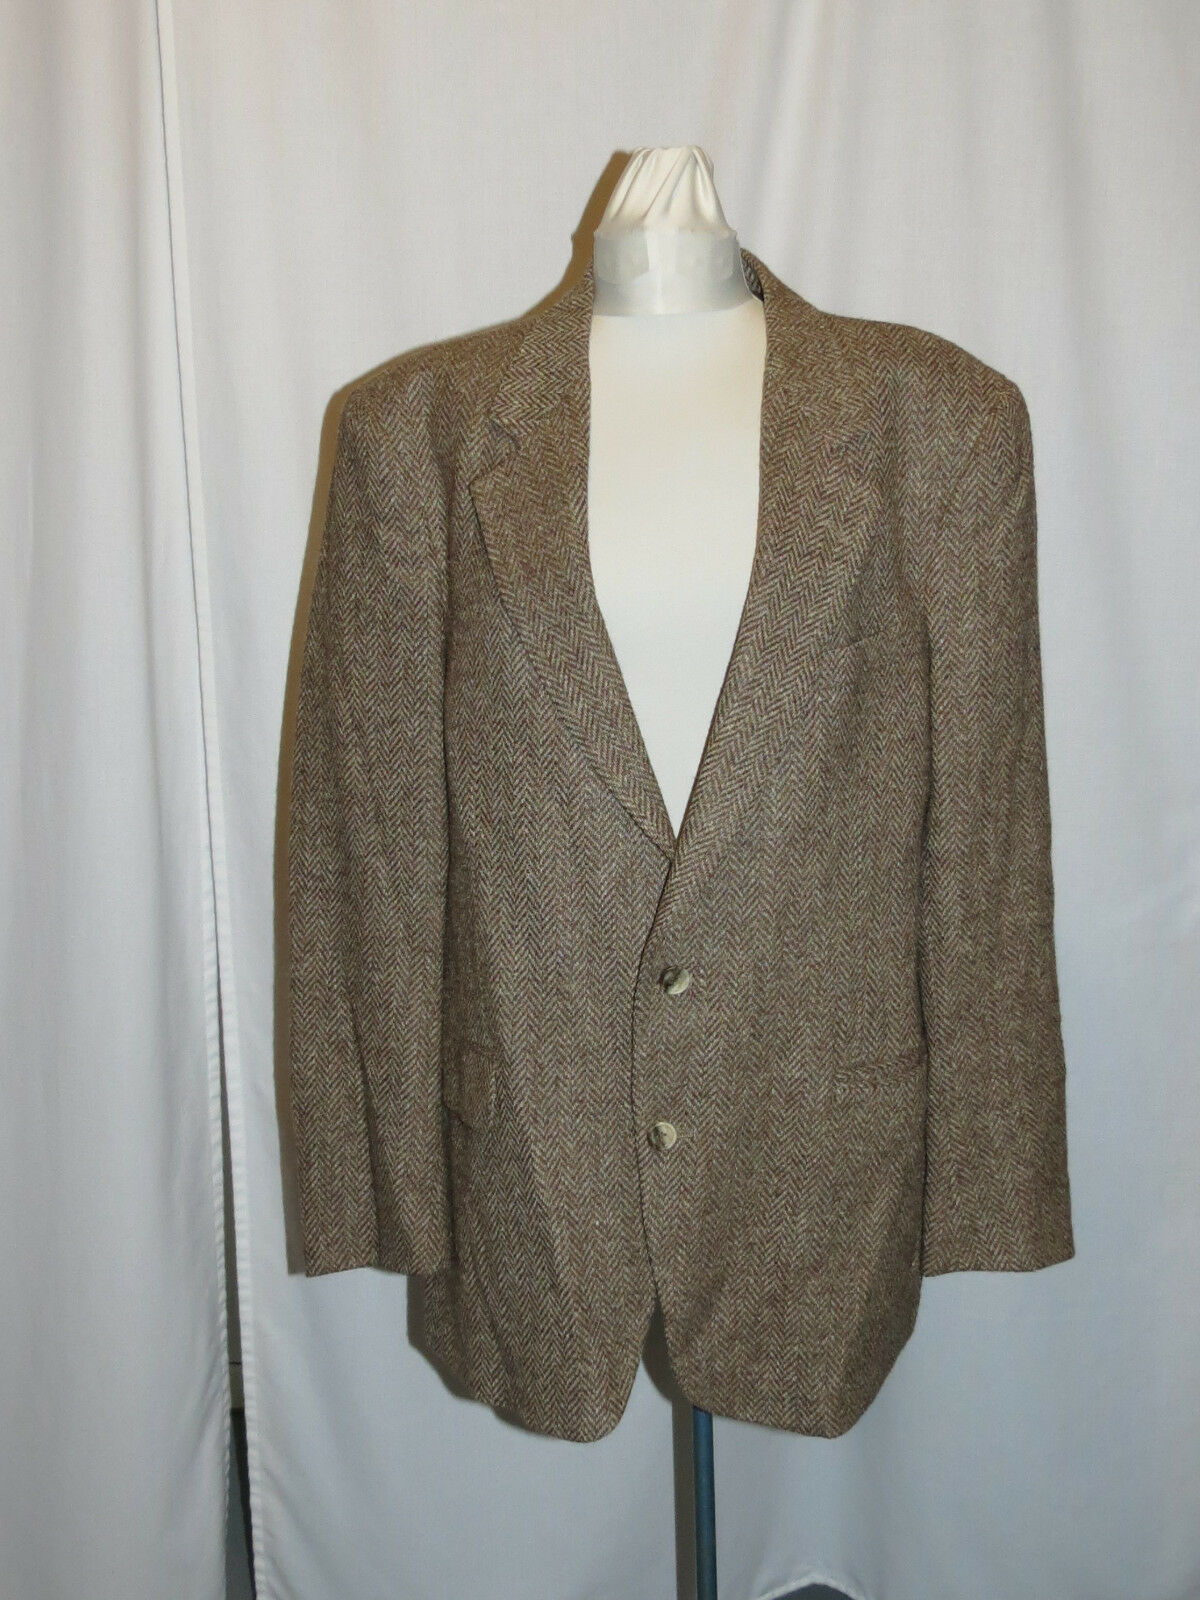 VTG DON ROBBIE MENS HERRINGBONE WOOL BLAZER SPORT COAT 42 WIND ROLLUP COLLAR